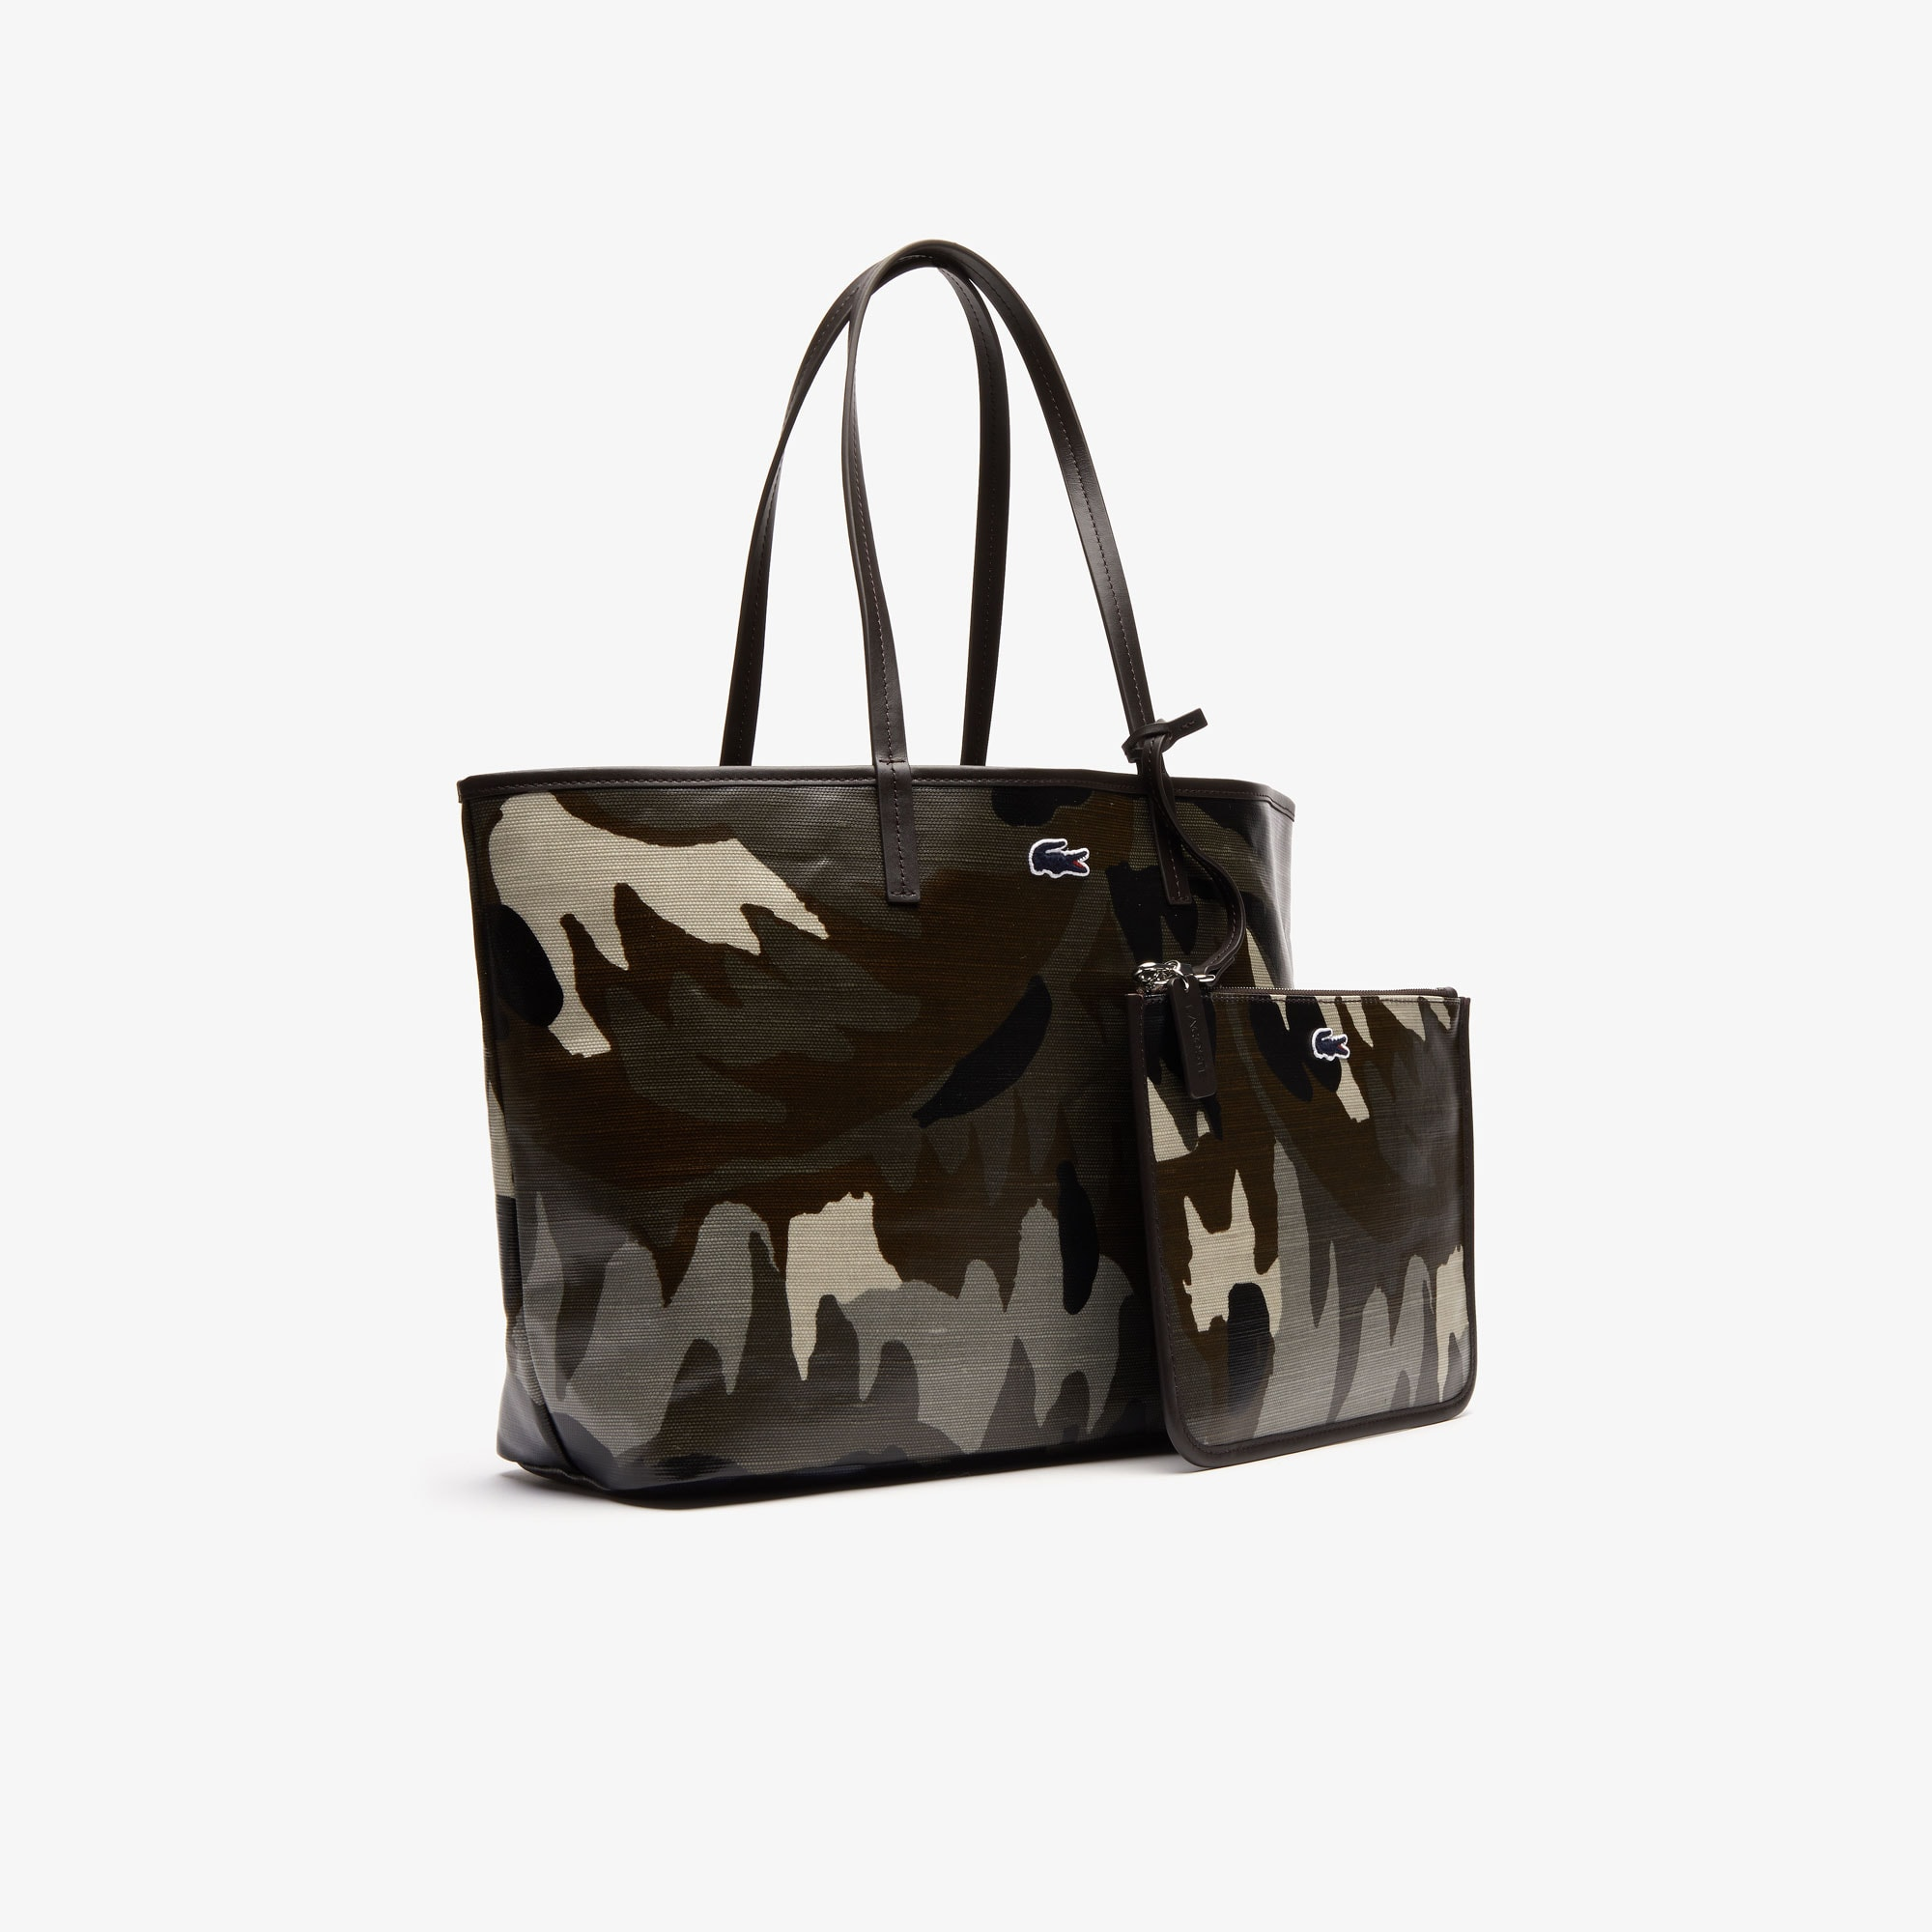 Women's Robert George Coated Print Canvas Tote Bag